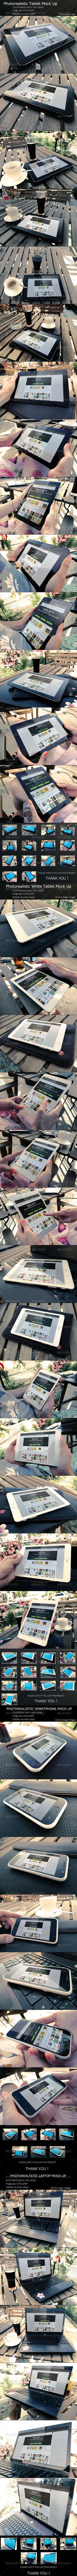 4 in 1 Bundle Realistic Screen with 40 views - Product Mock-Ups Graphics